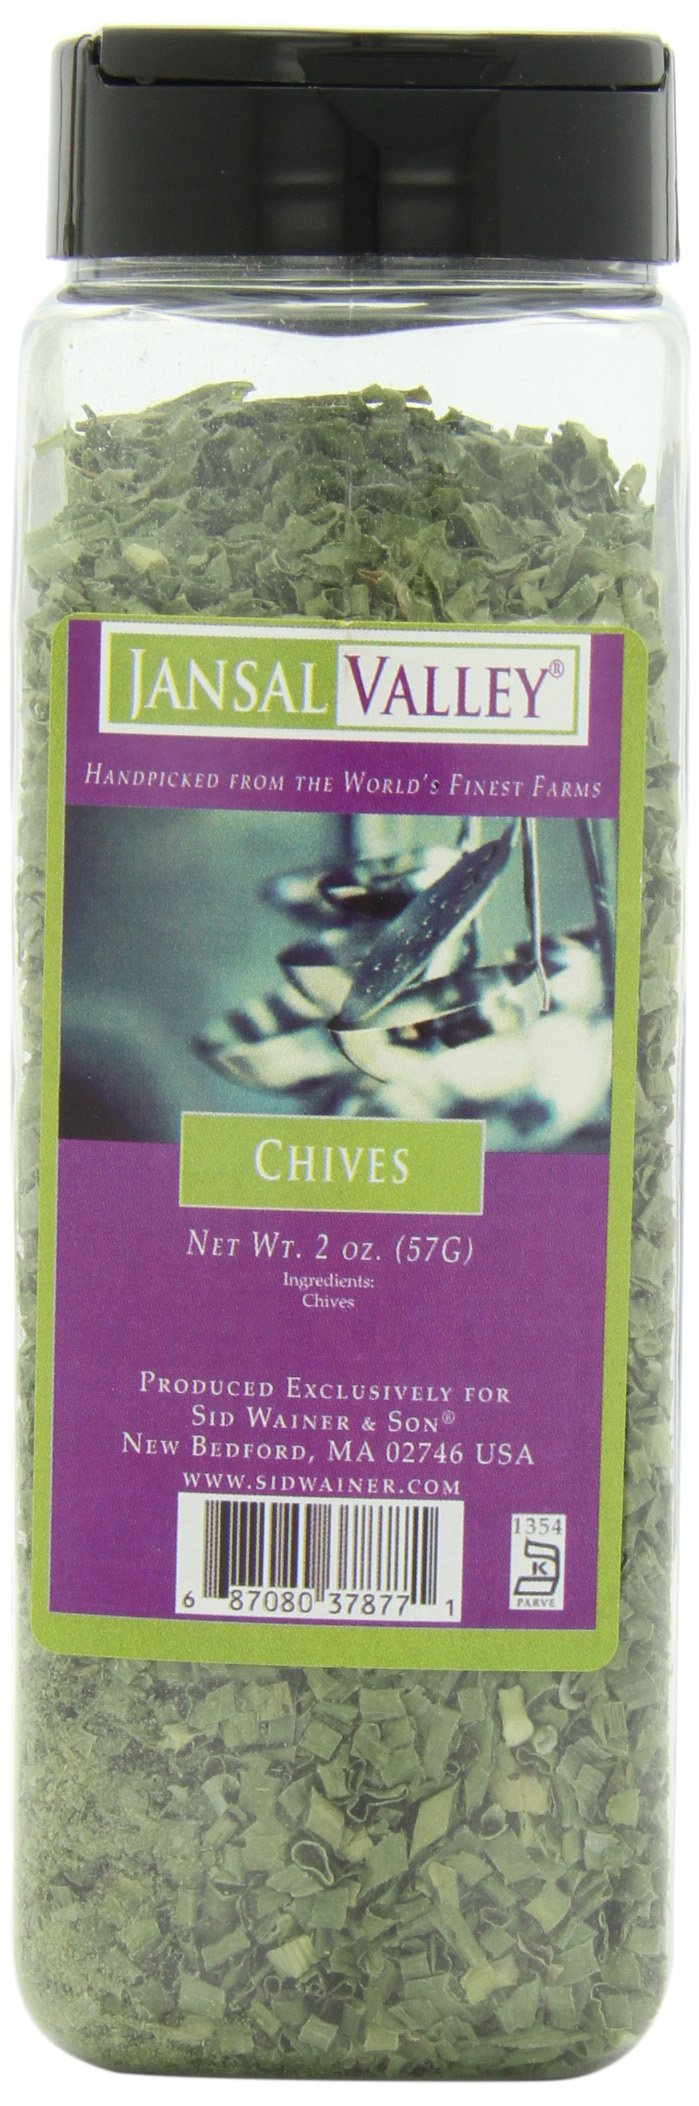 Jansal Valley Chives, 2 Ounce